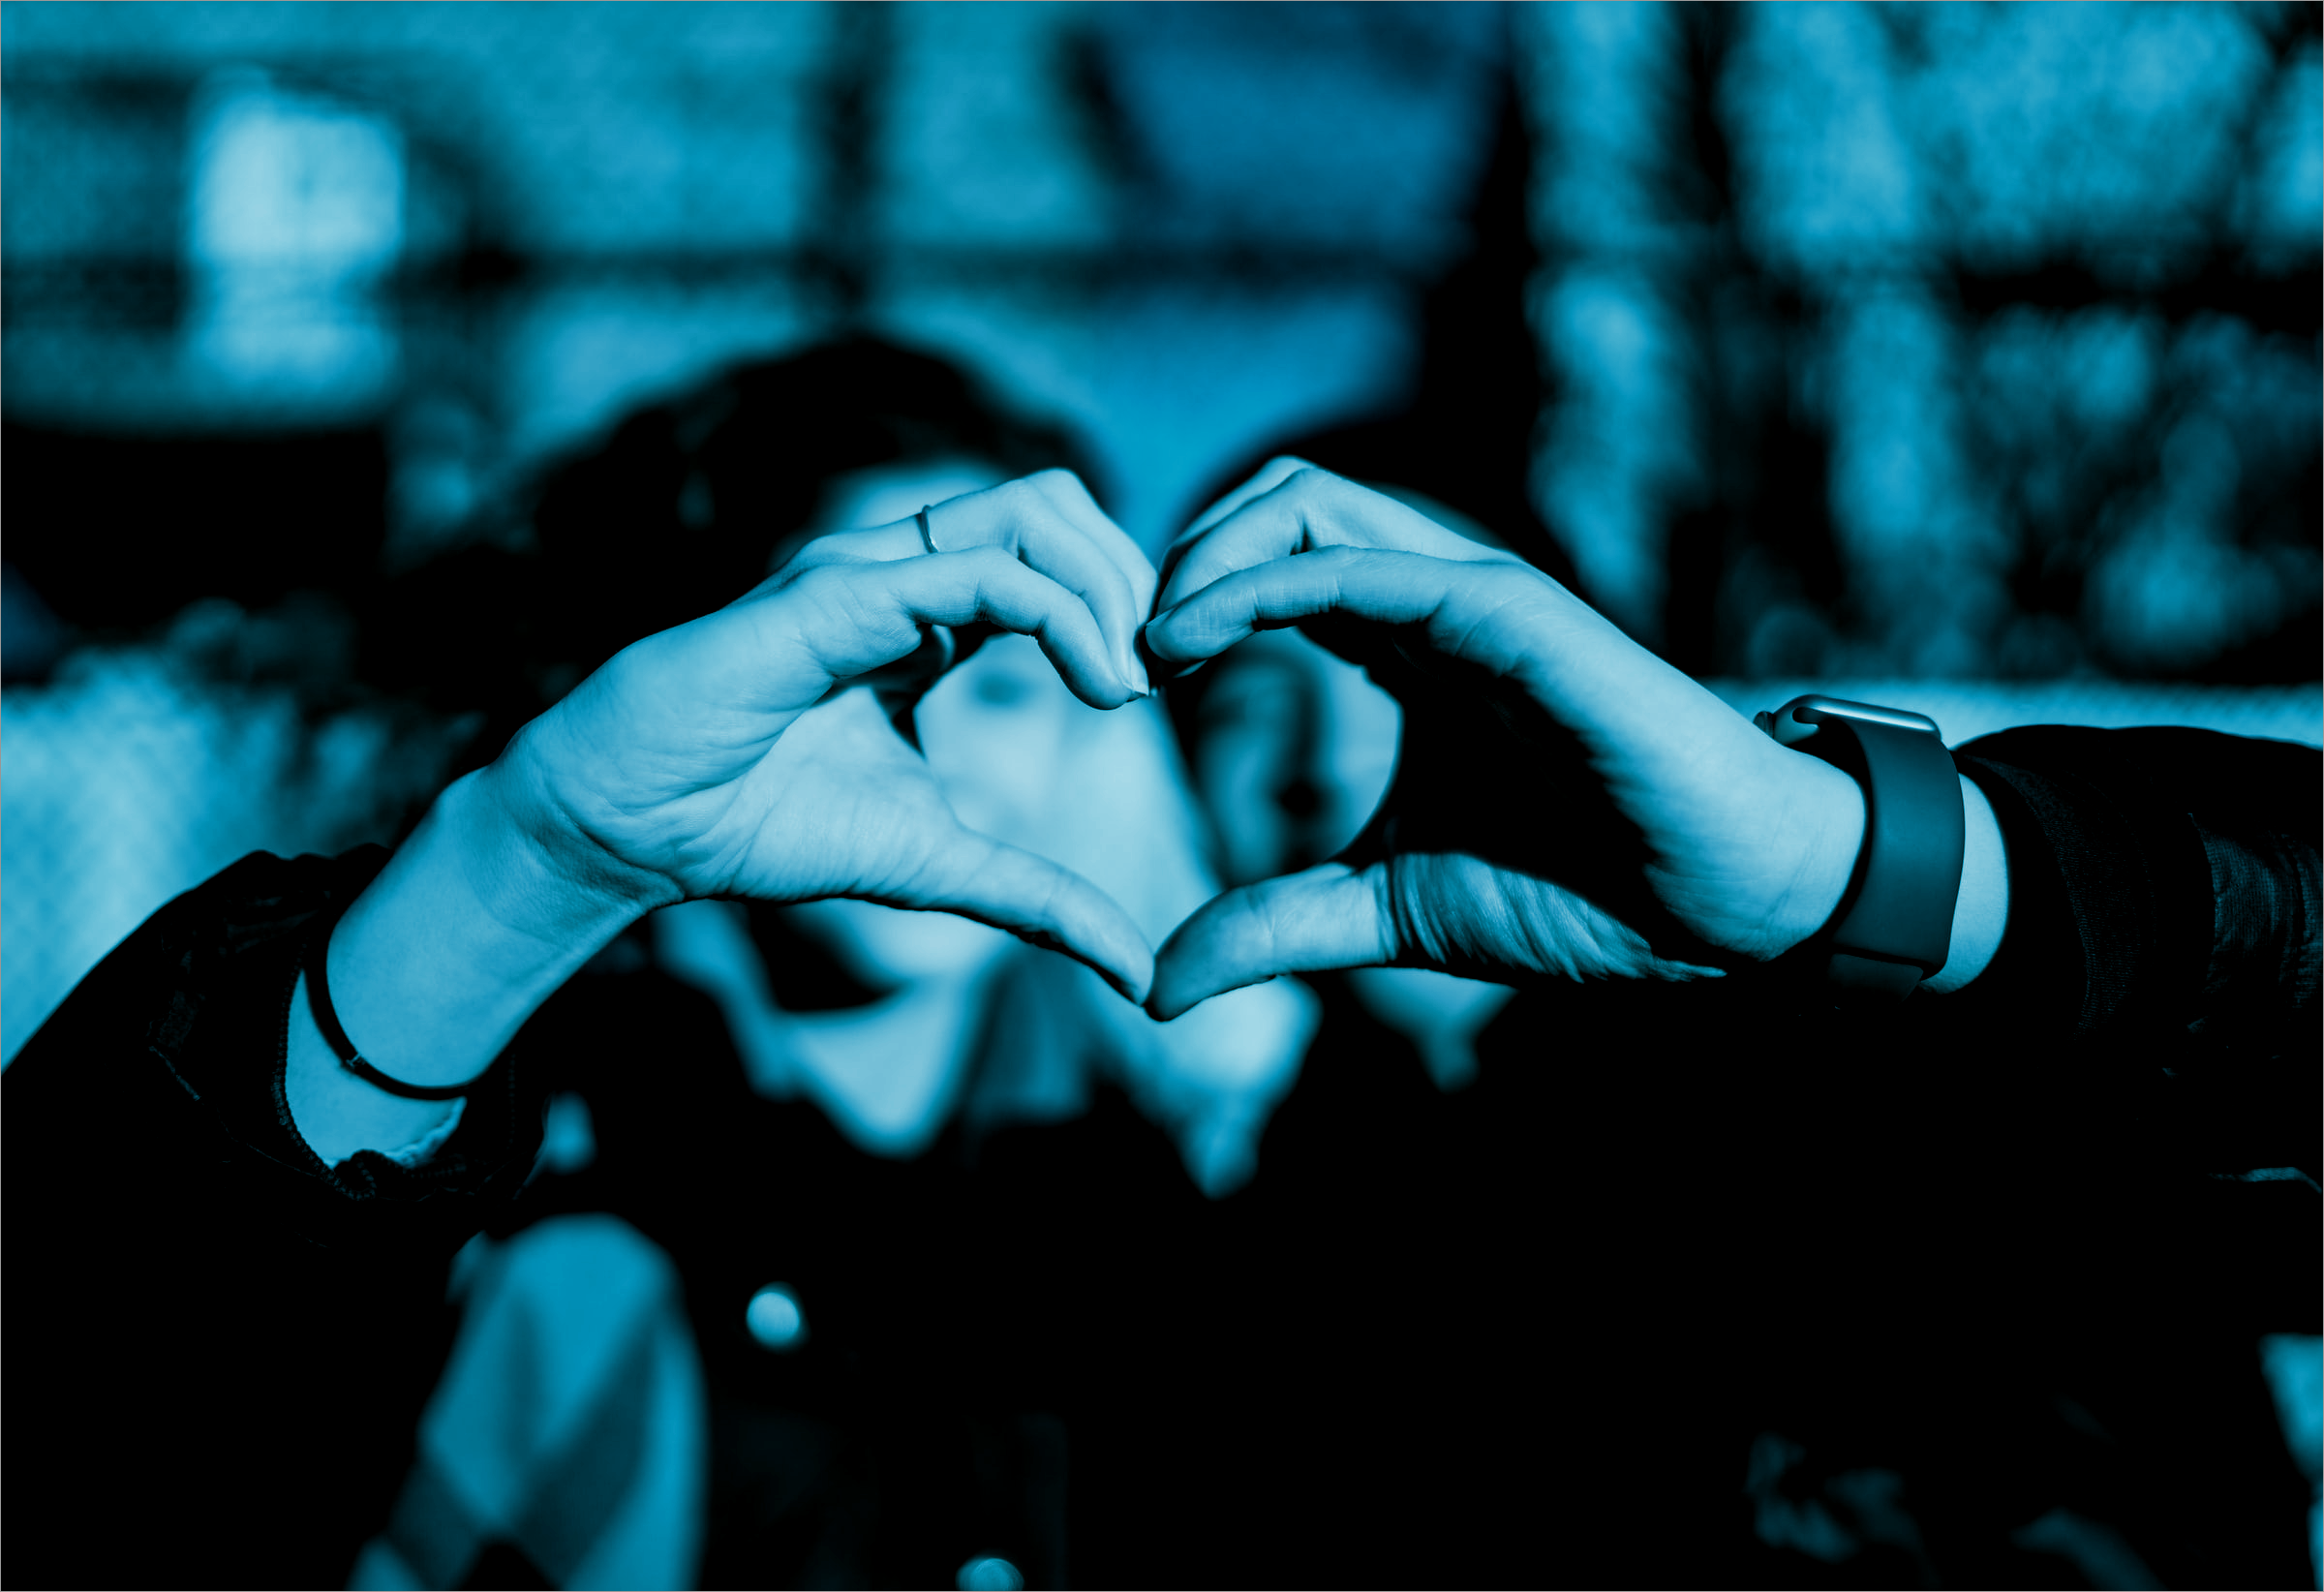 two people forming a heart with their hands